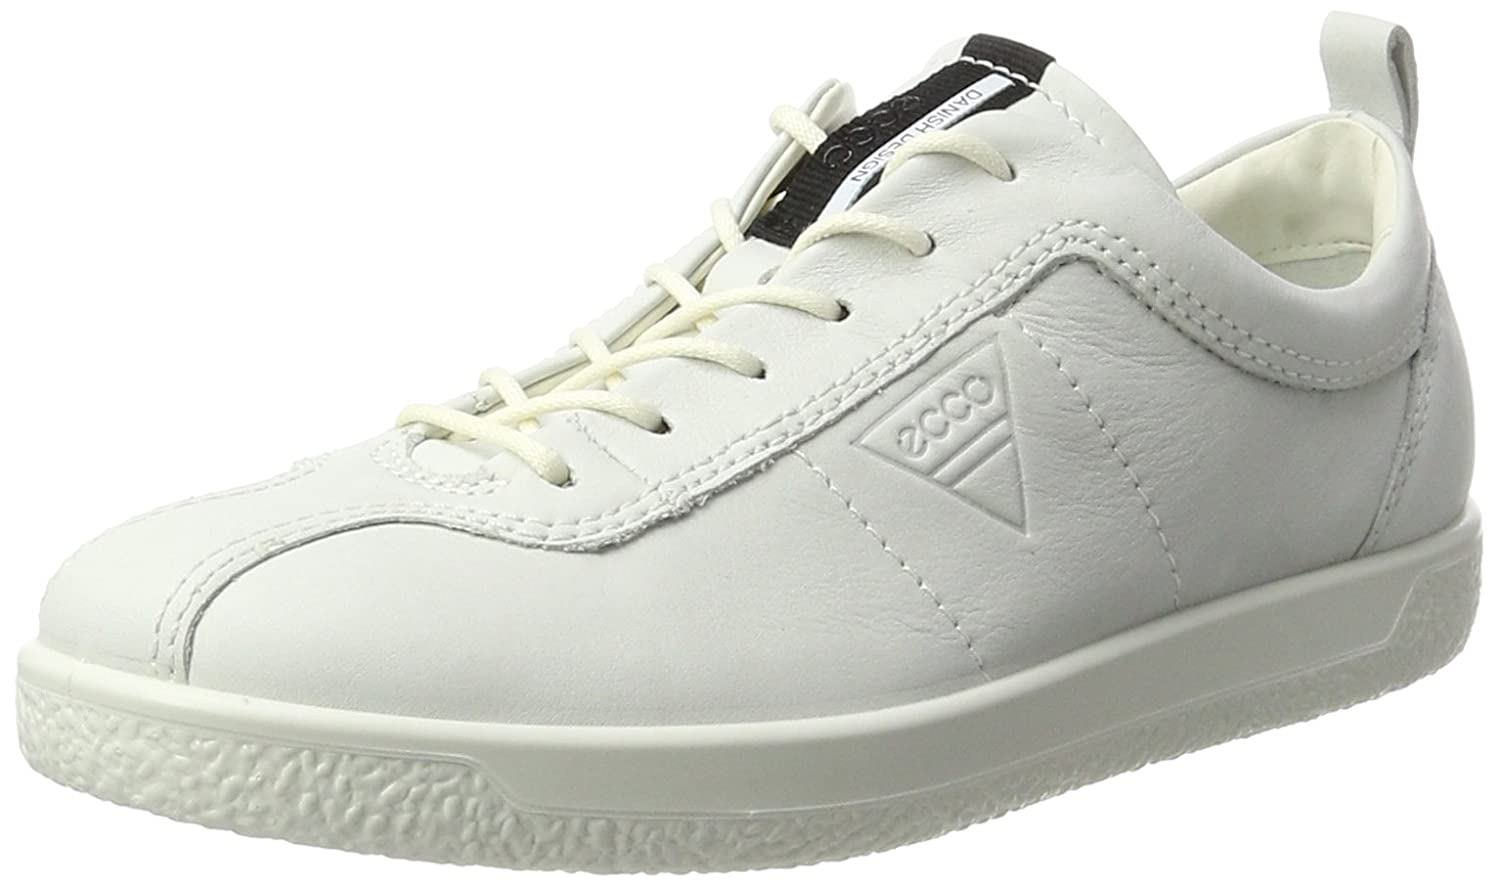 White ECCO Womens Soft 1 Lace Sneakers